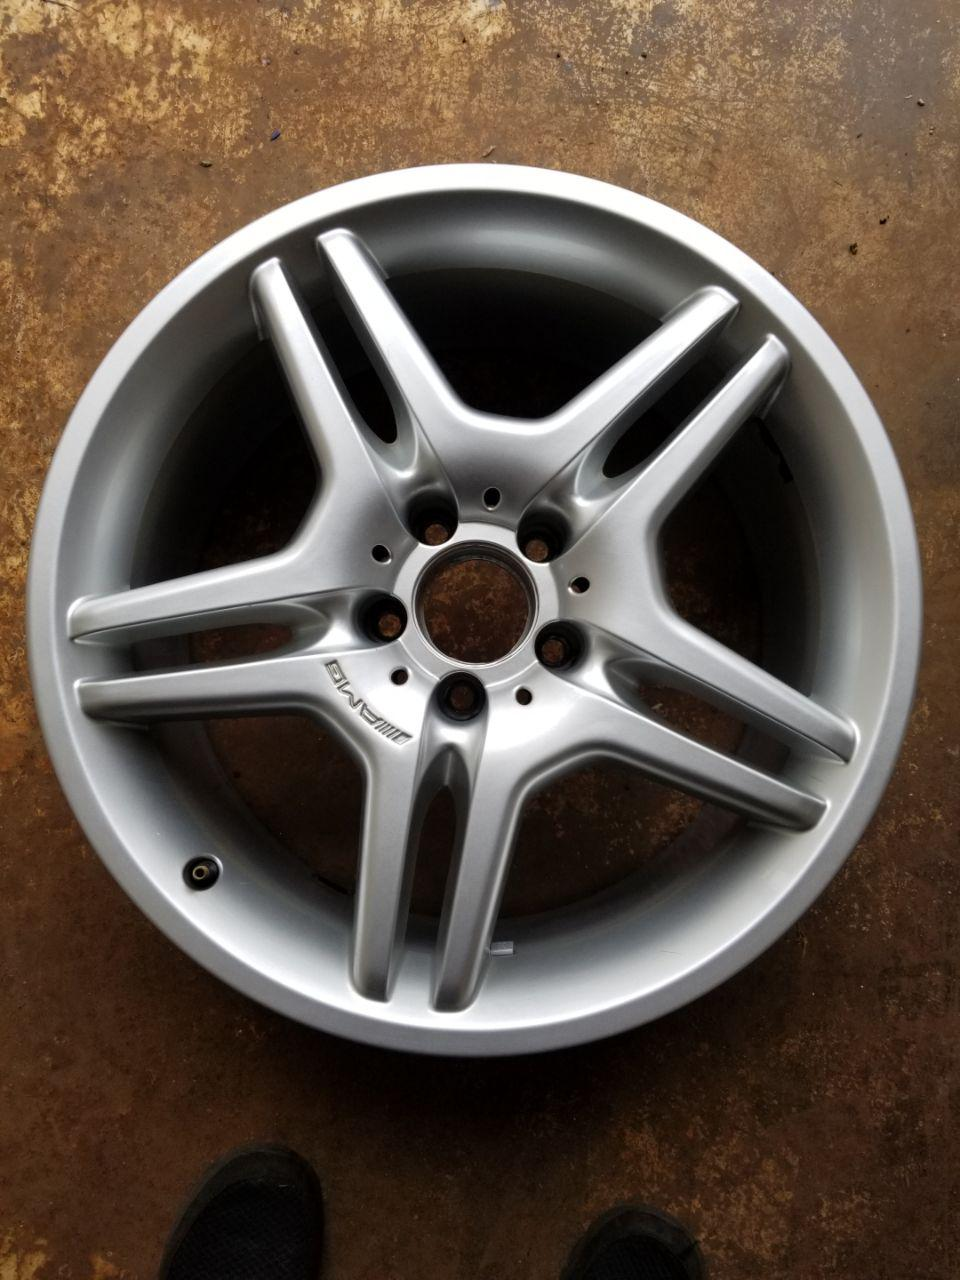 - OEM WHEELS - 2006-2007 MERCEDES S-CLASS AMG 18x8.5 5 SPLIT SPOKE Hollander #65399 /  USED